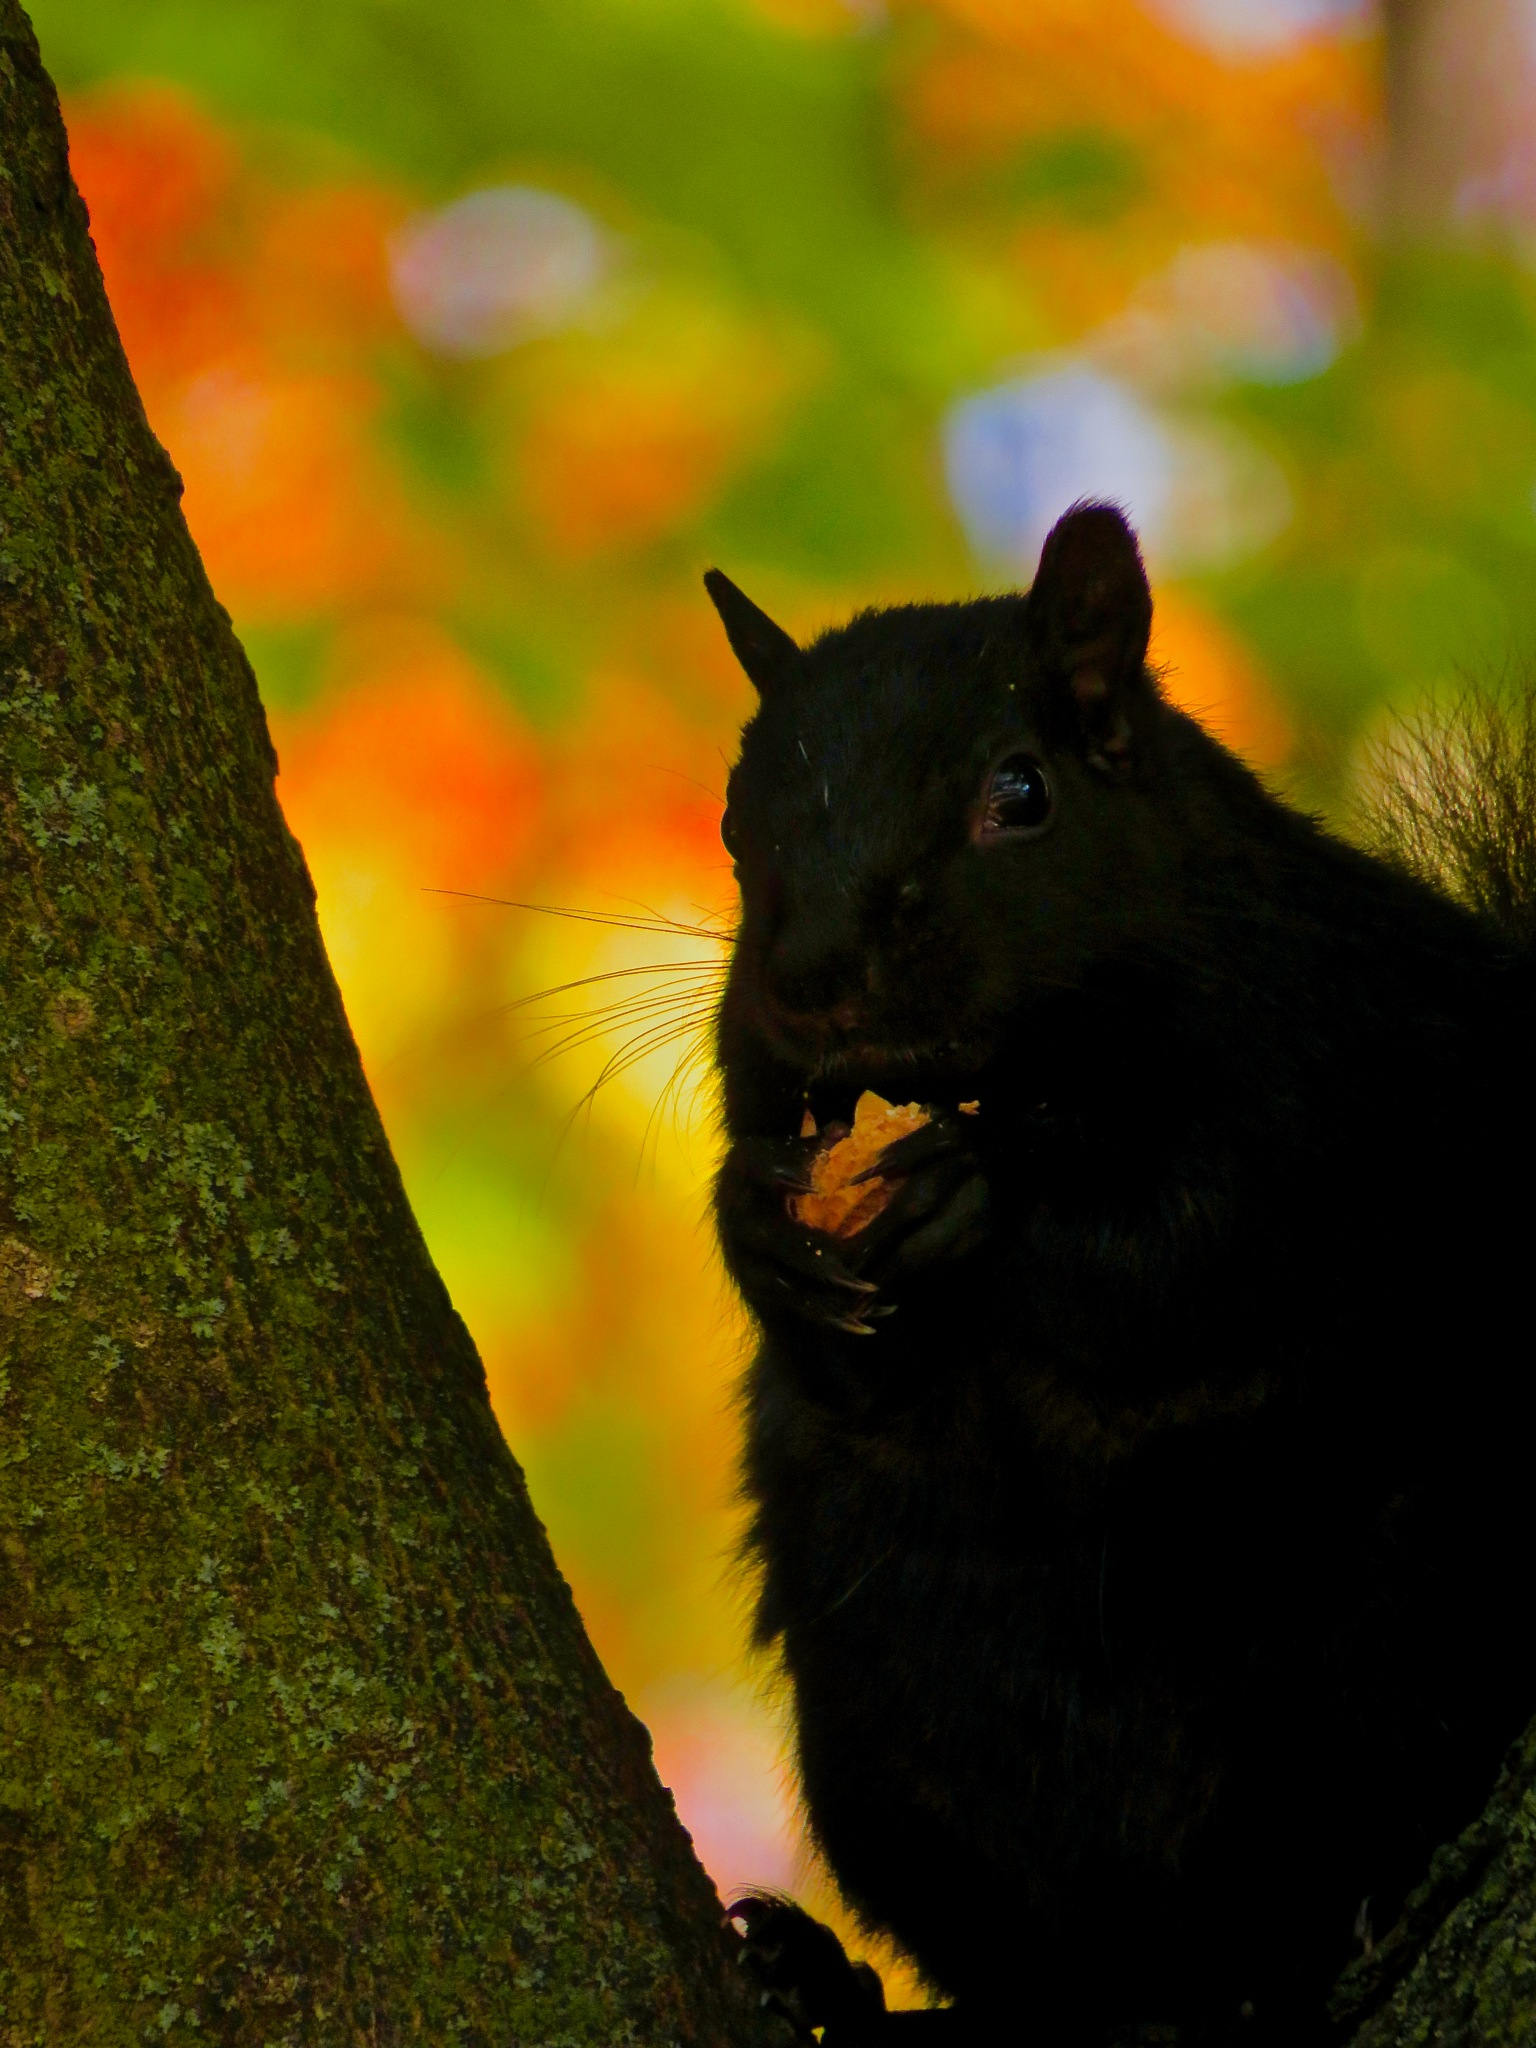 liked how the whiskers played against the background as he munched in the shade by David Devion